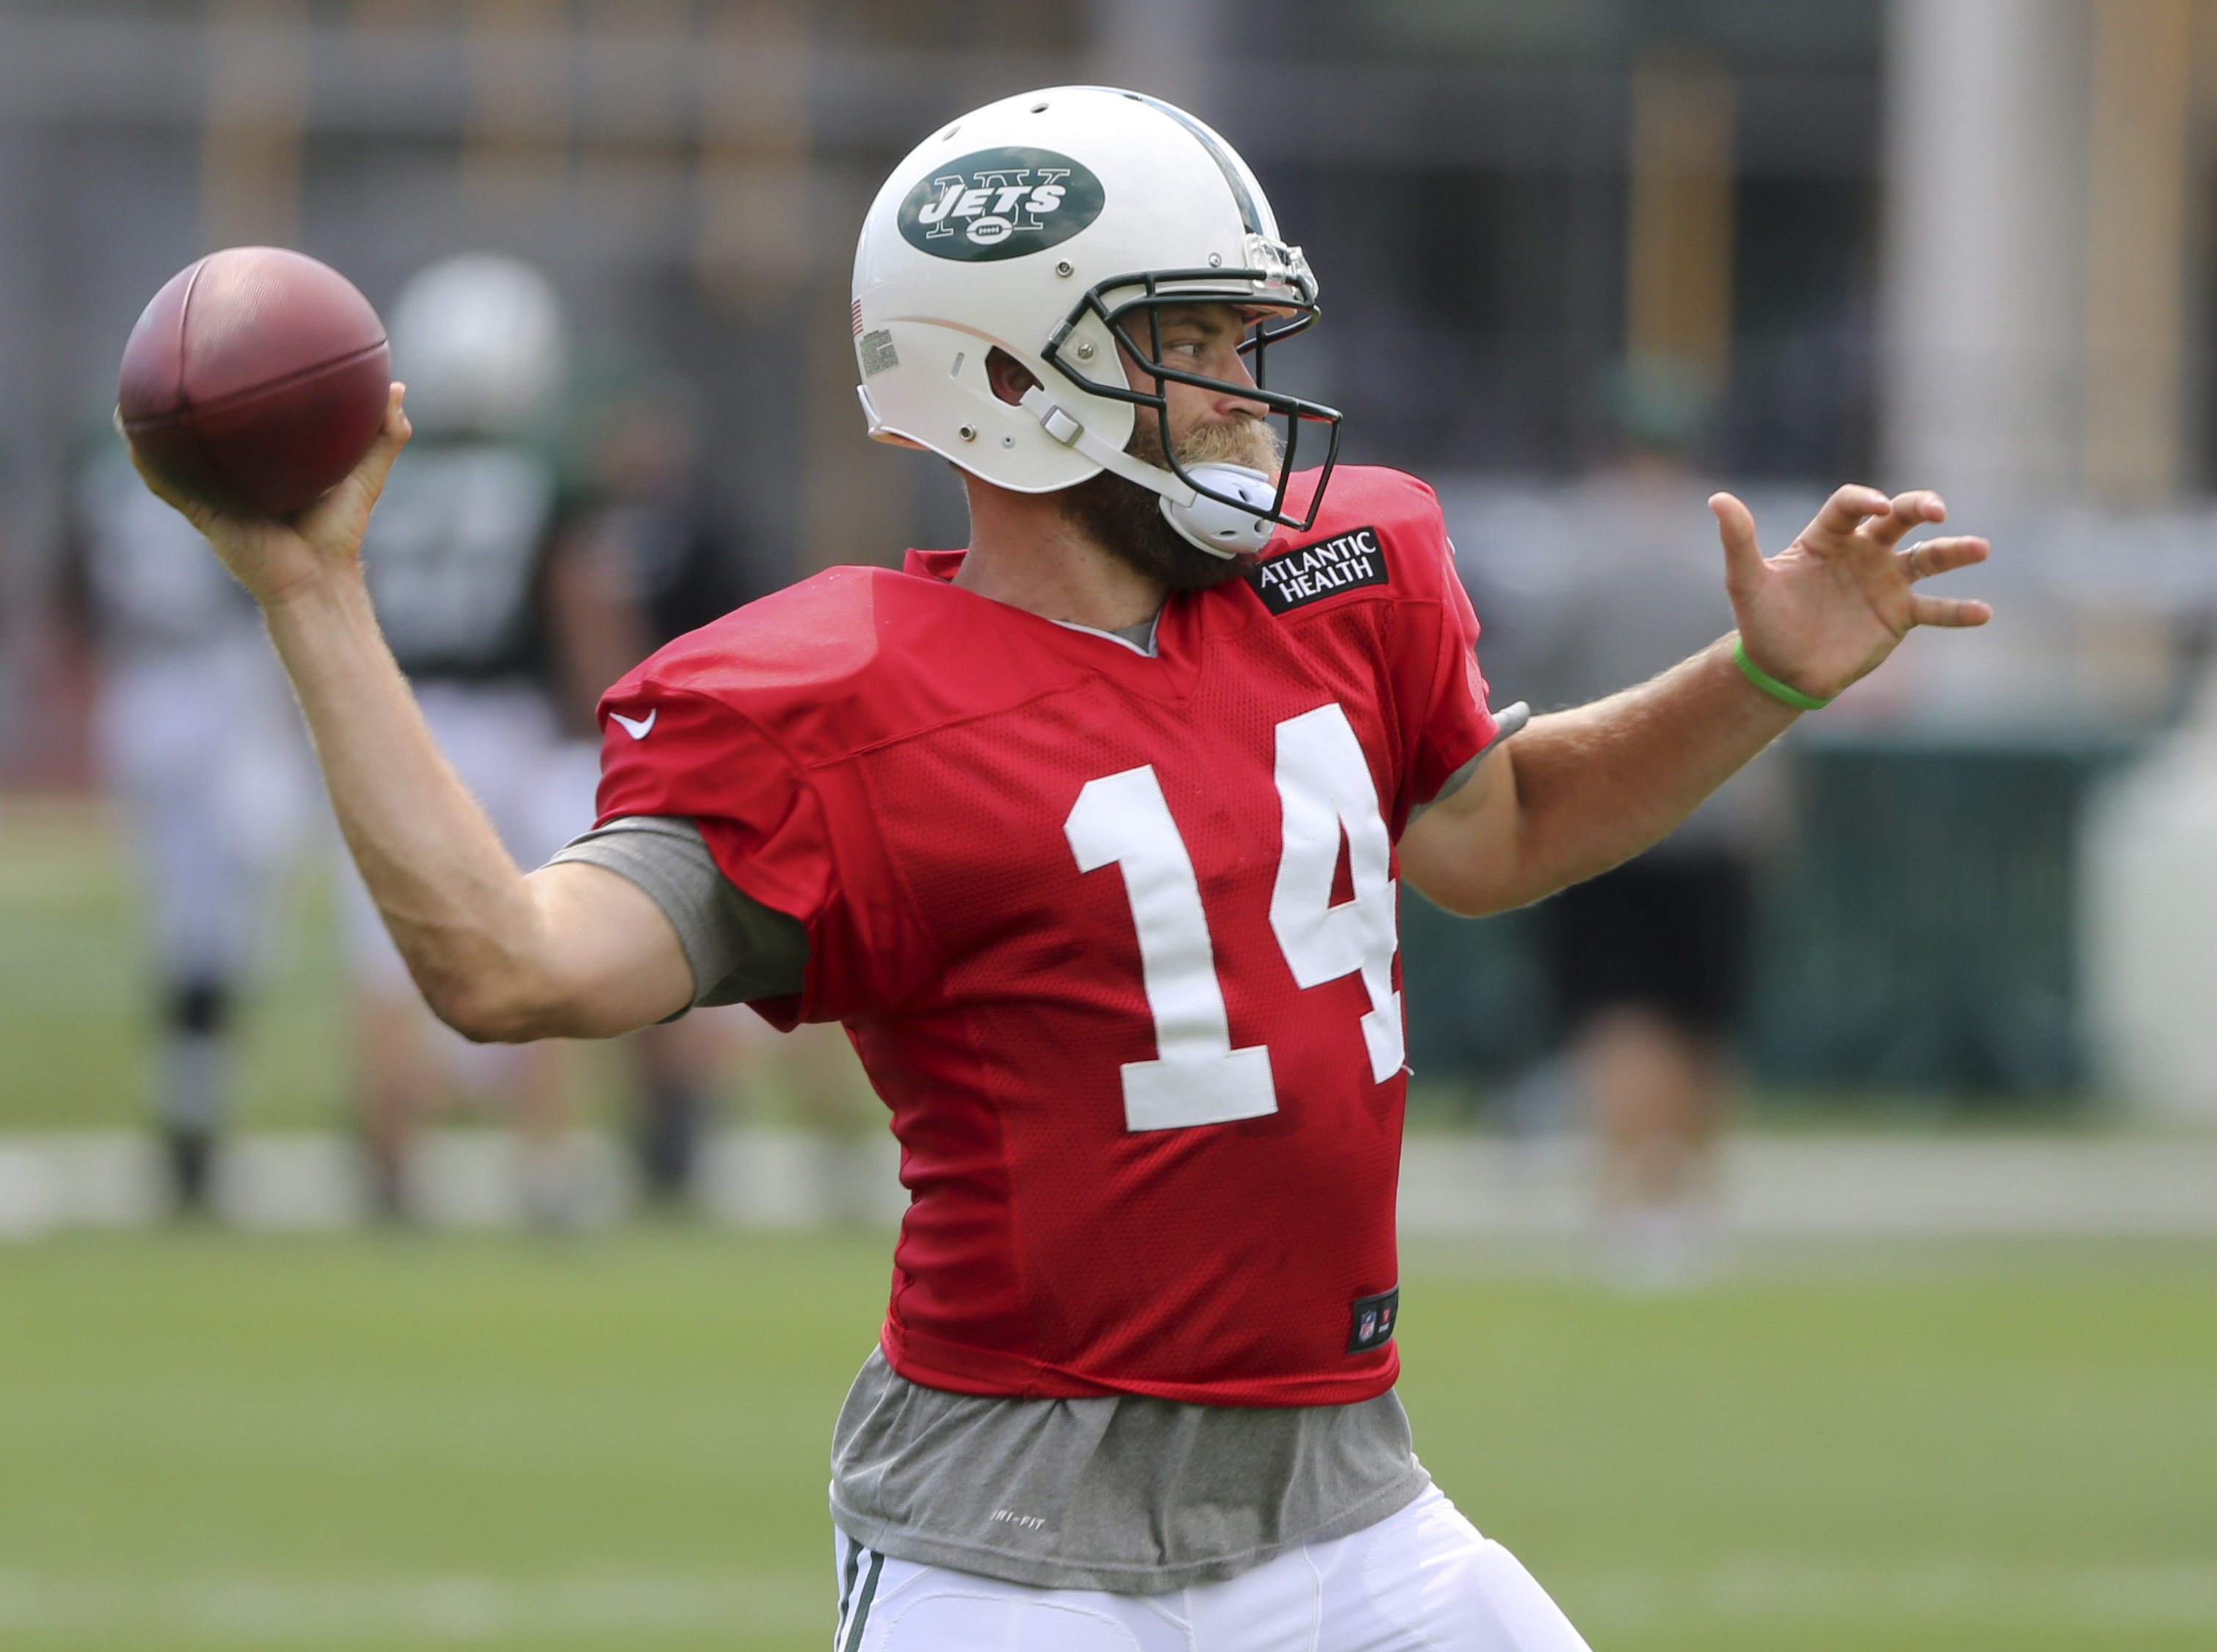 New York Jets quarterback Ryan Fitzpatrick throws during practice at the NFL football team's training camp in Florham Park, N.J., Wednesday, Aug. 3, 2016. (AP Photo/Seth Wenig)